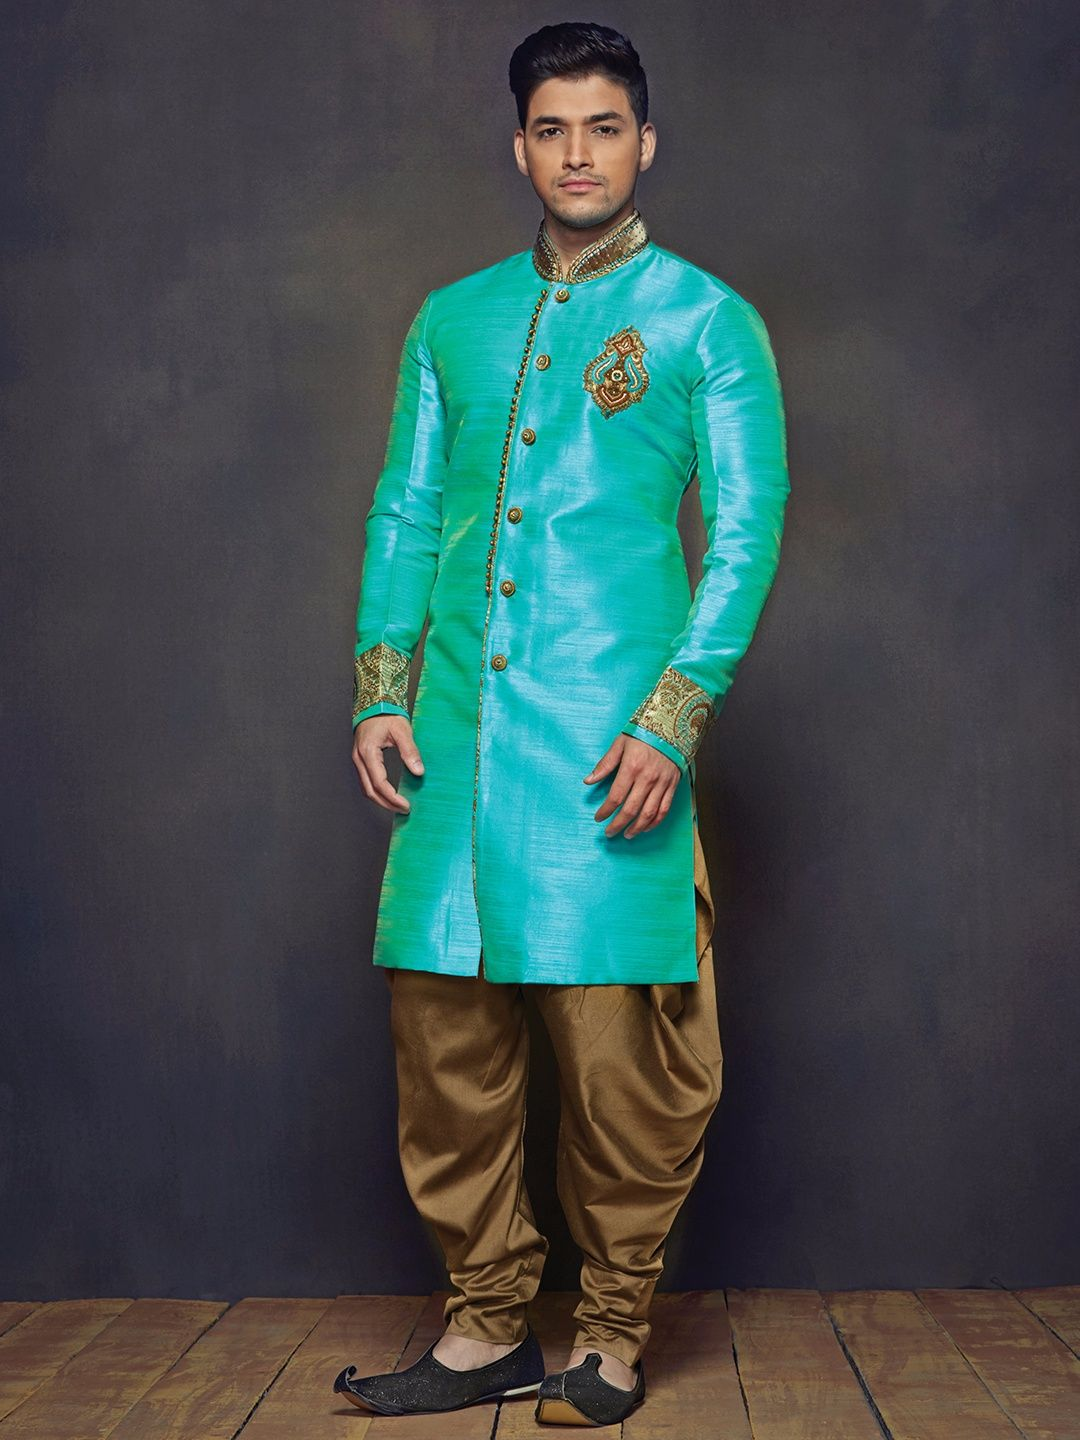 0f23de0255 Aqua Raw Silk Wedding Wear Men Kurta Suit for diwali. To View more  collection at www.g3fashion.com For price or detail do whatsApp +91- 9913433322 #menskurta ...